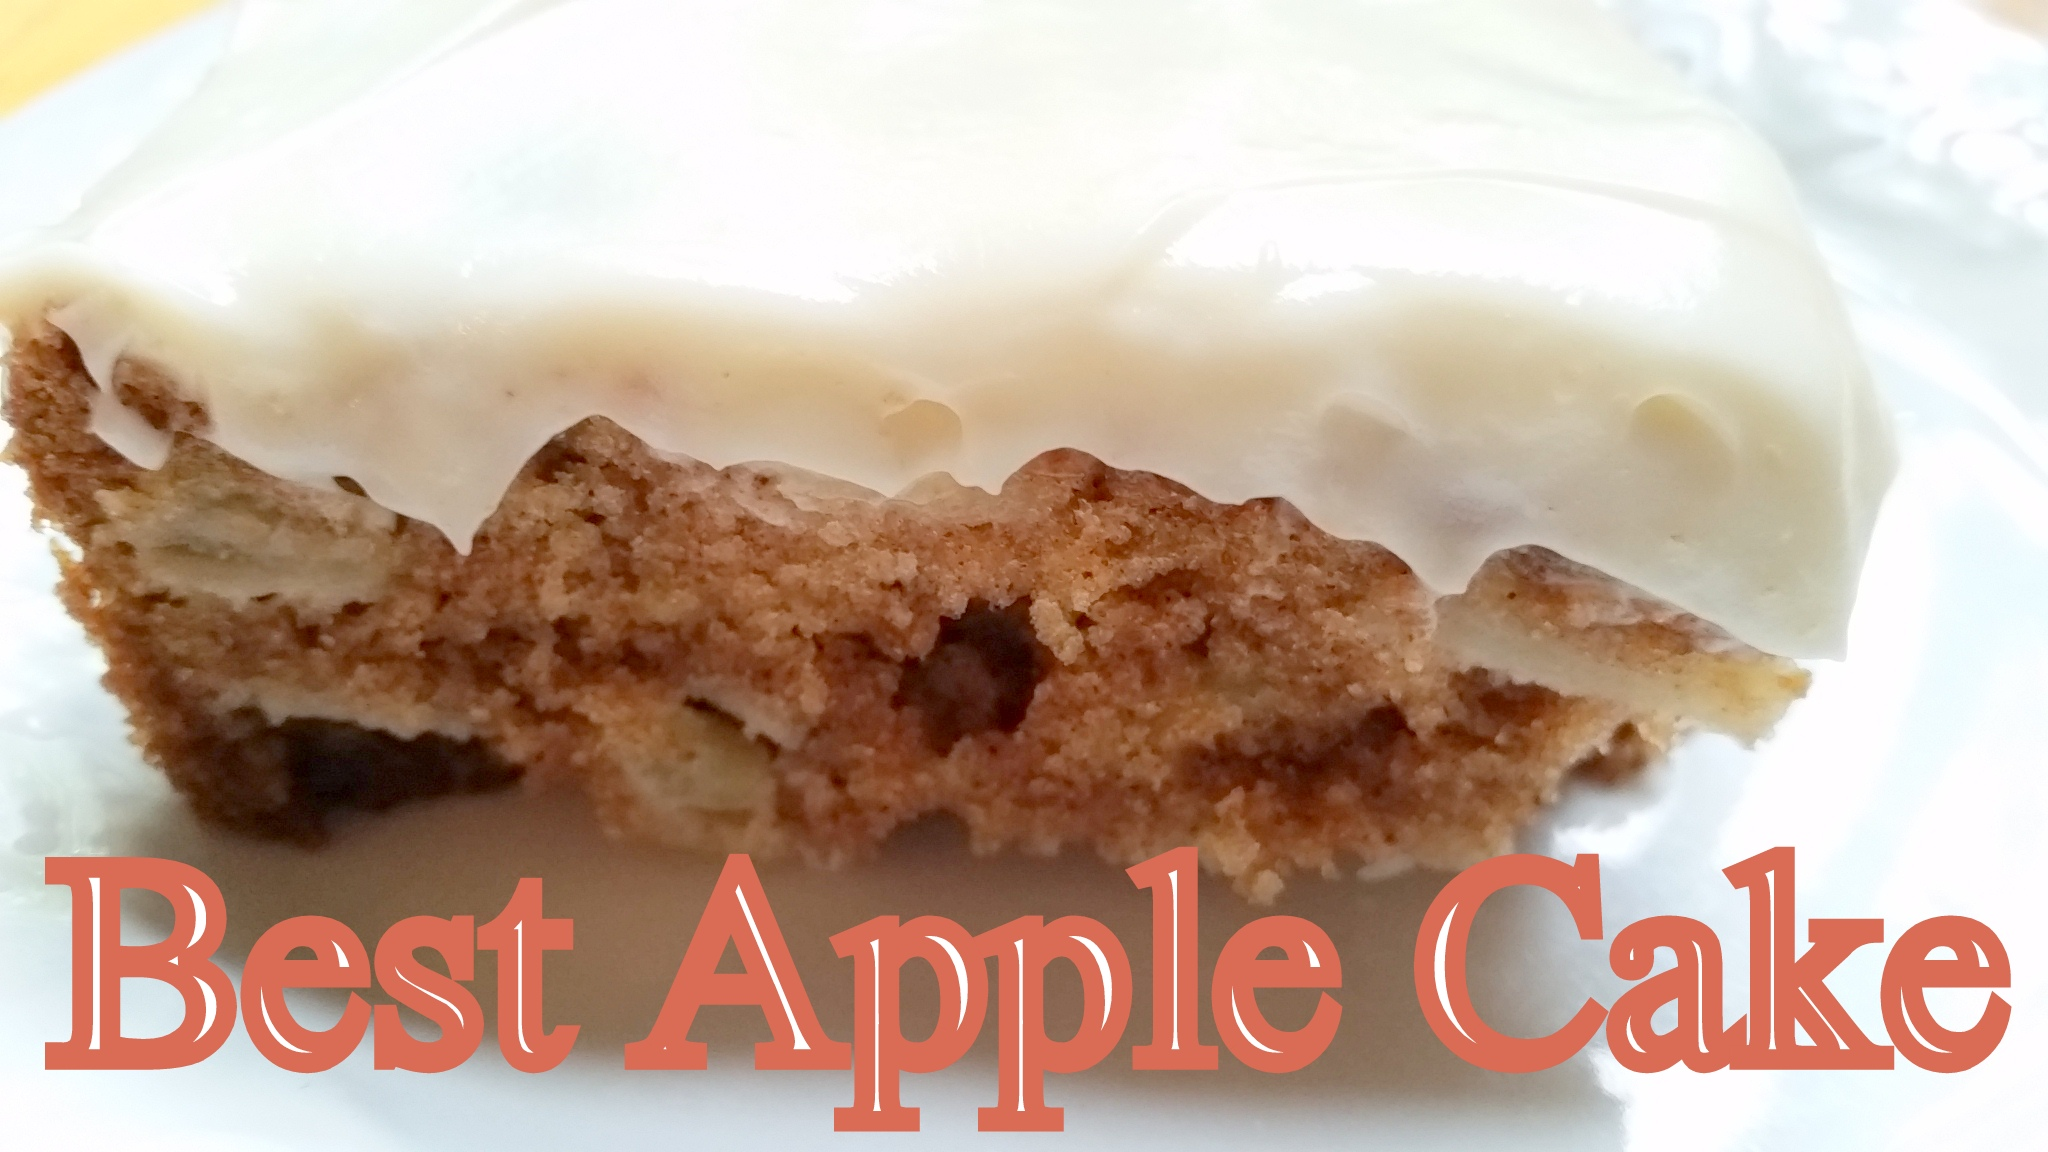 Best Apple Cake